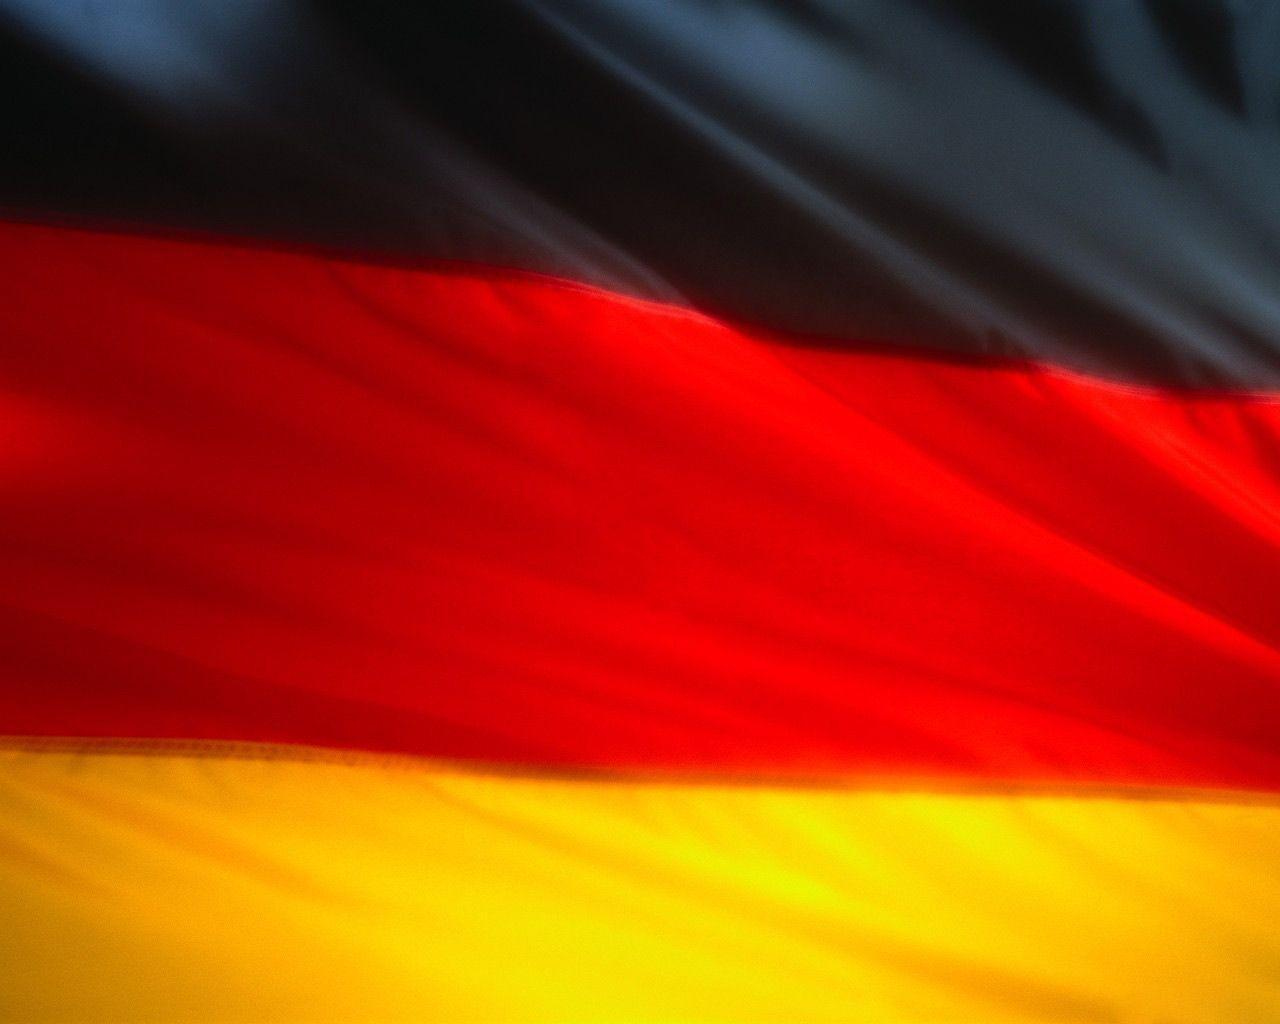 Hd Wallpapers Germany Flag 720 X 455 19 Kb Jpeg | HD Wallpapers ...